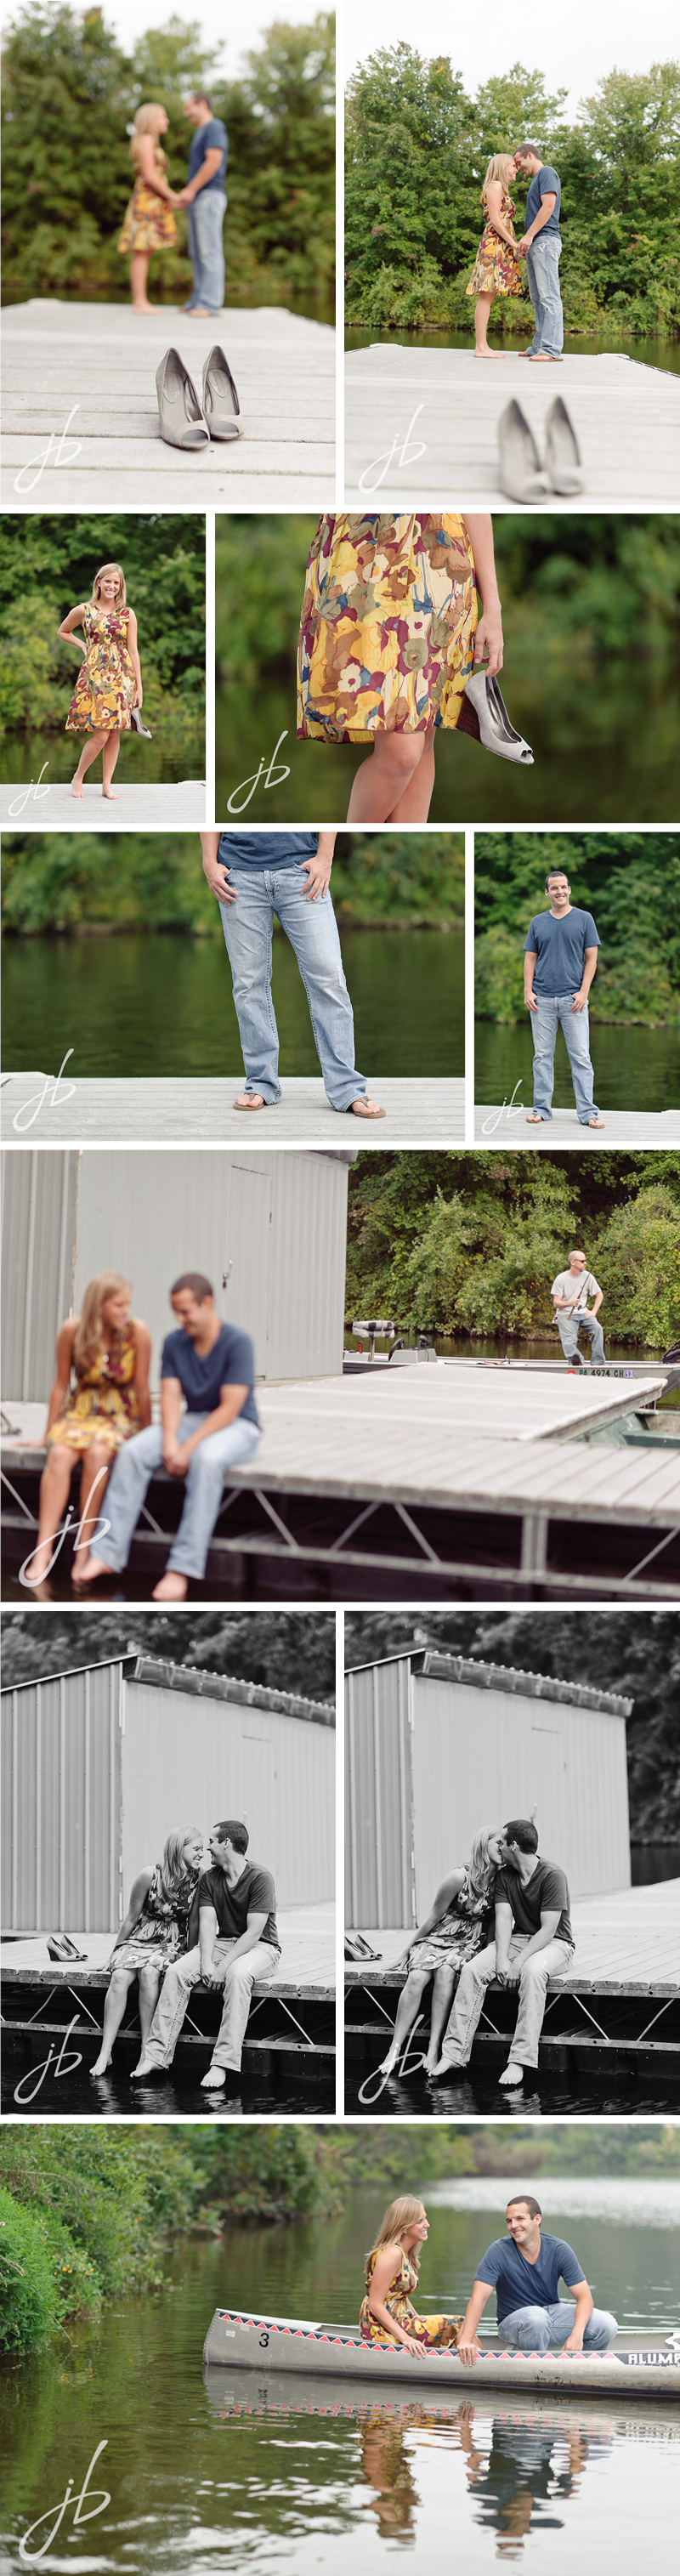 York PA wedding photography by Jeremy Bischoff Photography 001